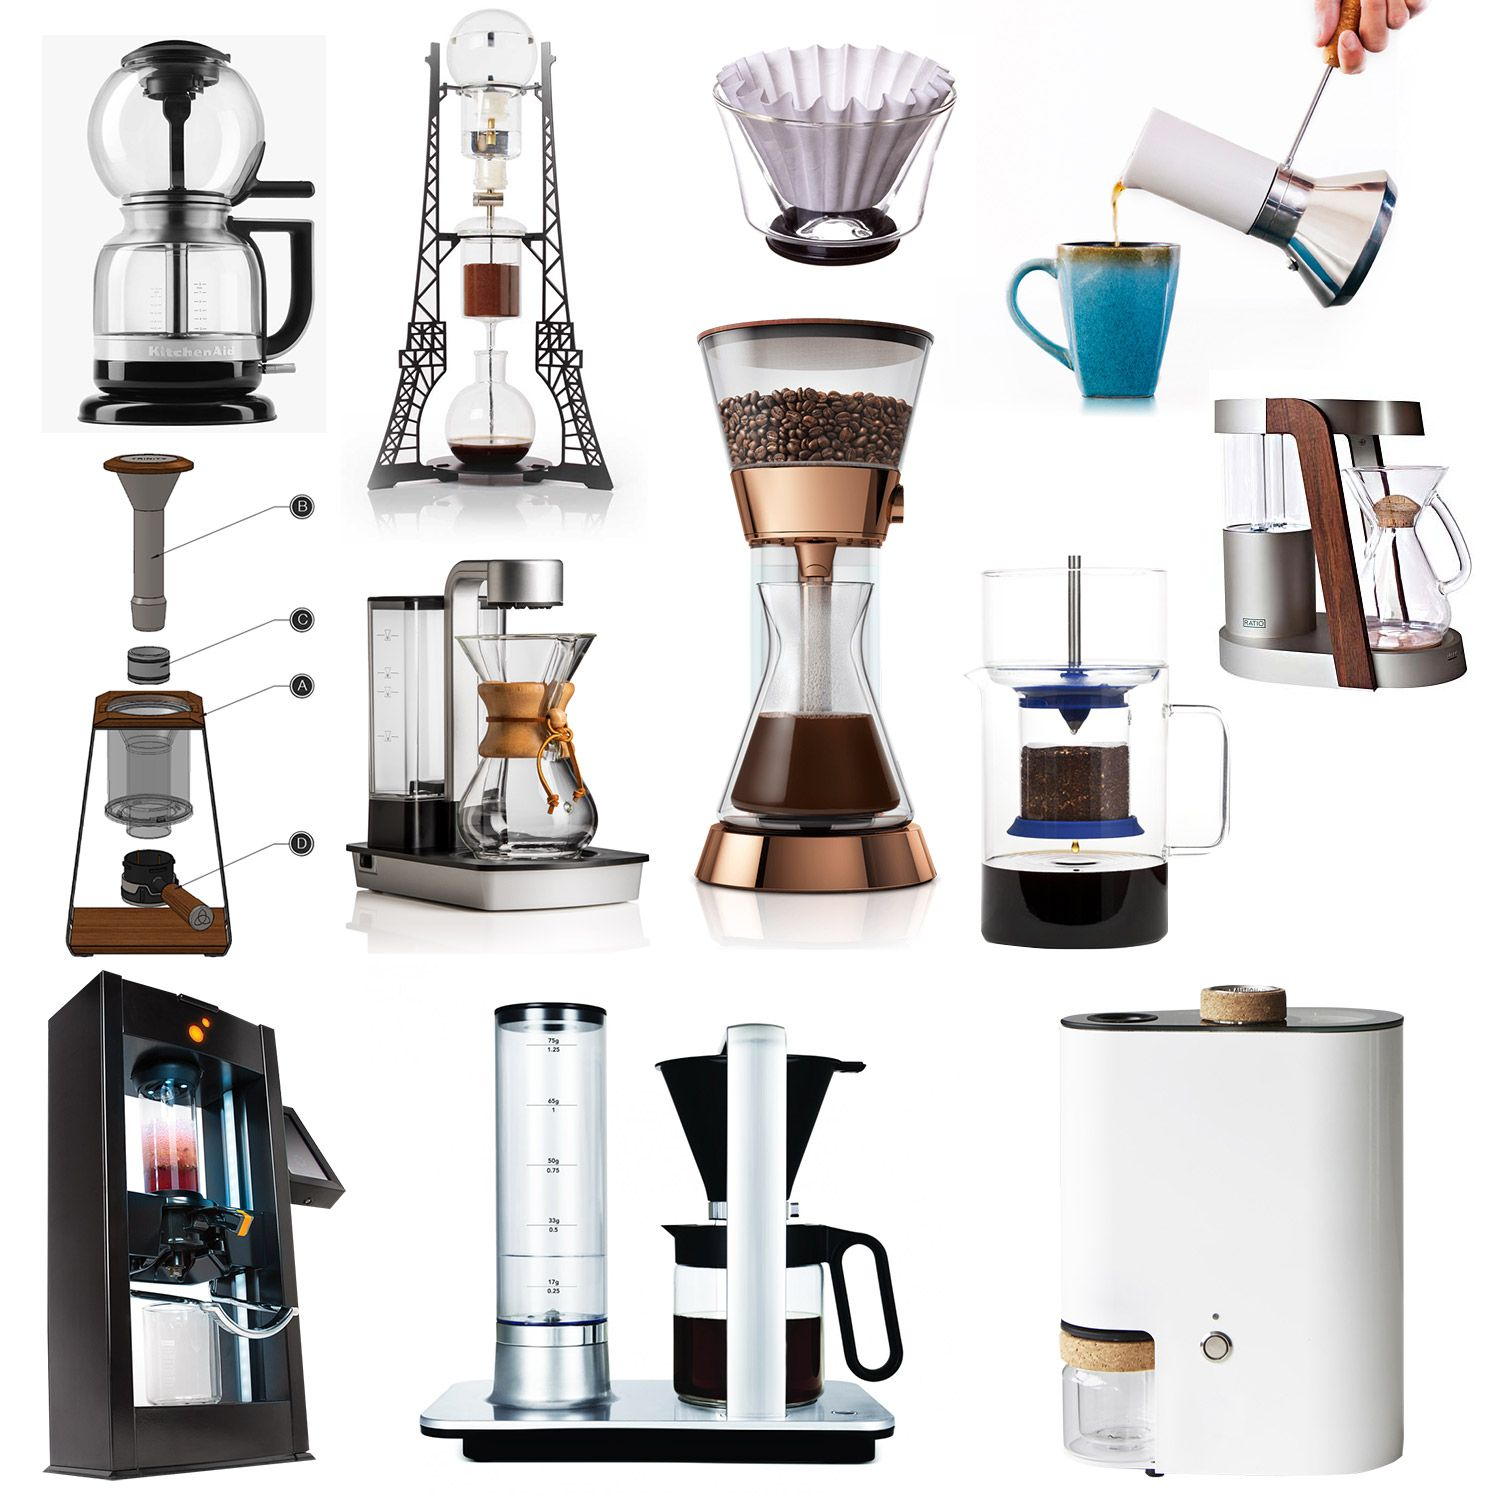 Best Way To Make Cold Press Coffee At Home